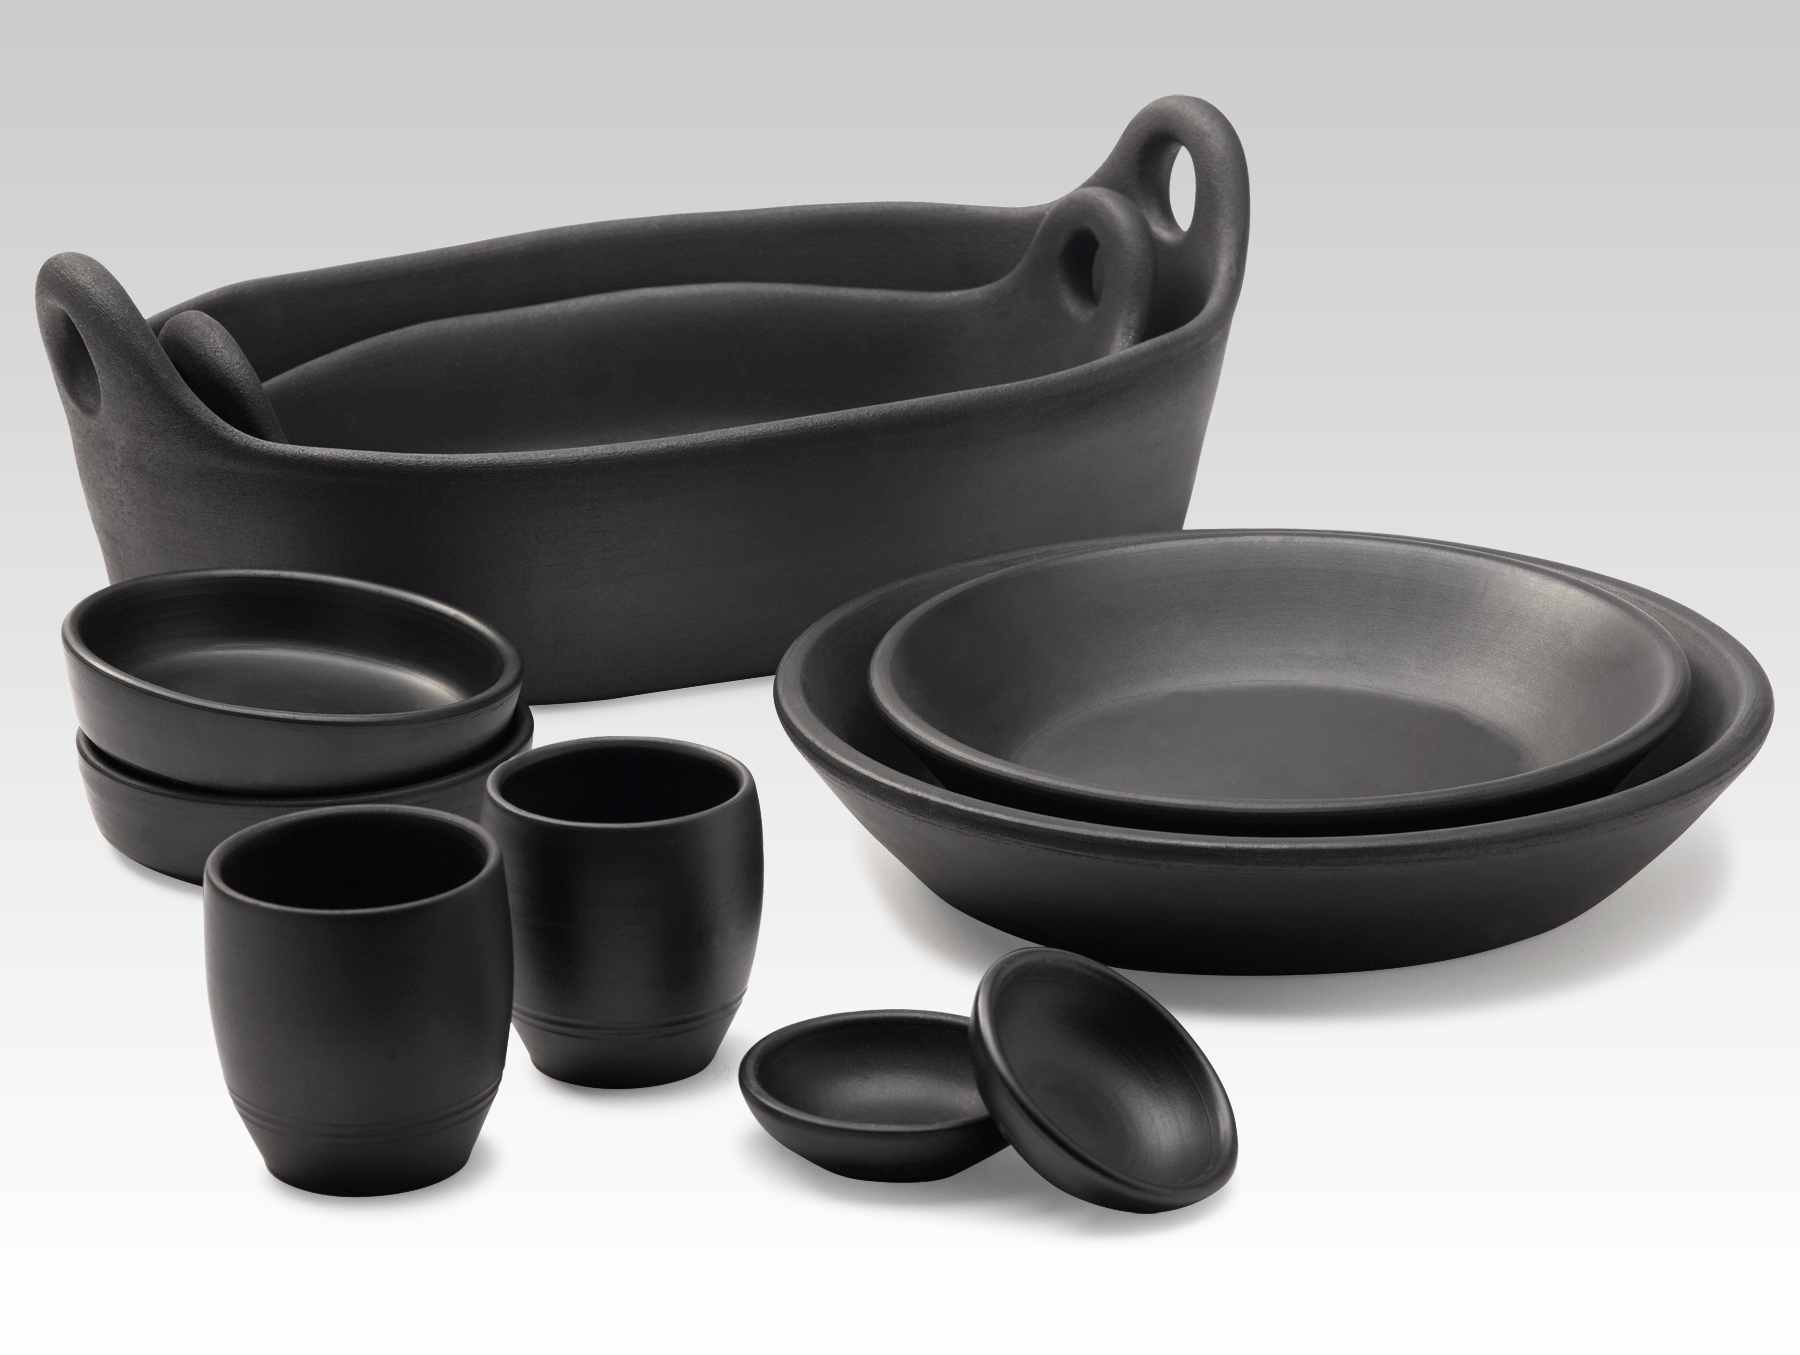 BittersCo_Kitchen_Portuguese-Barro-Negro-Flameware---Group-Shot-(Collection-Shot)_1.jpg